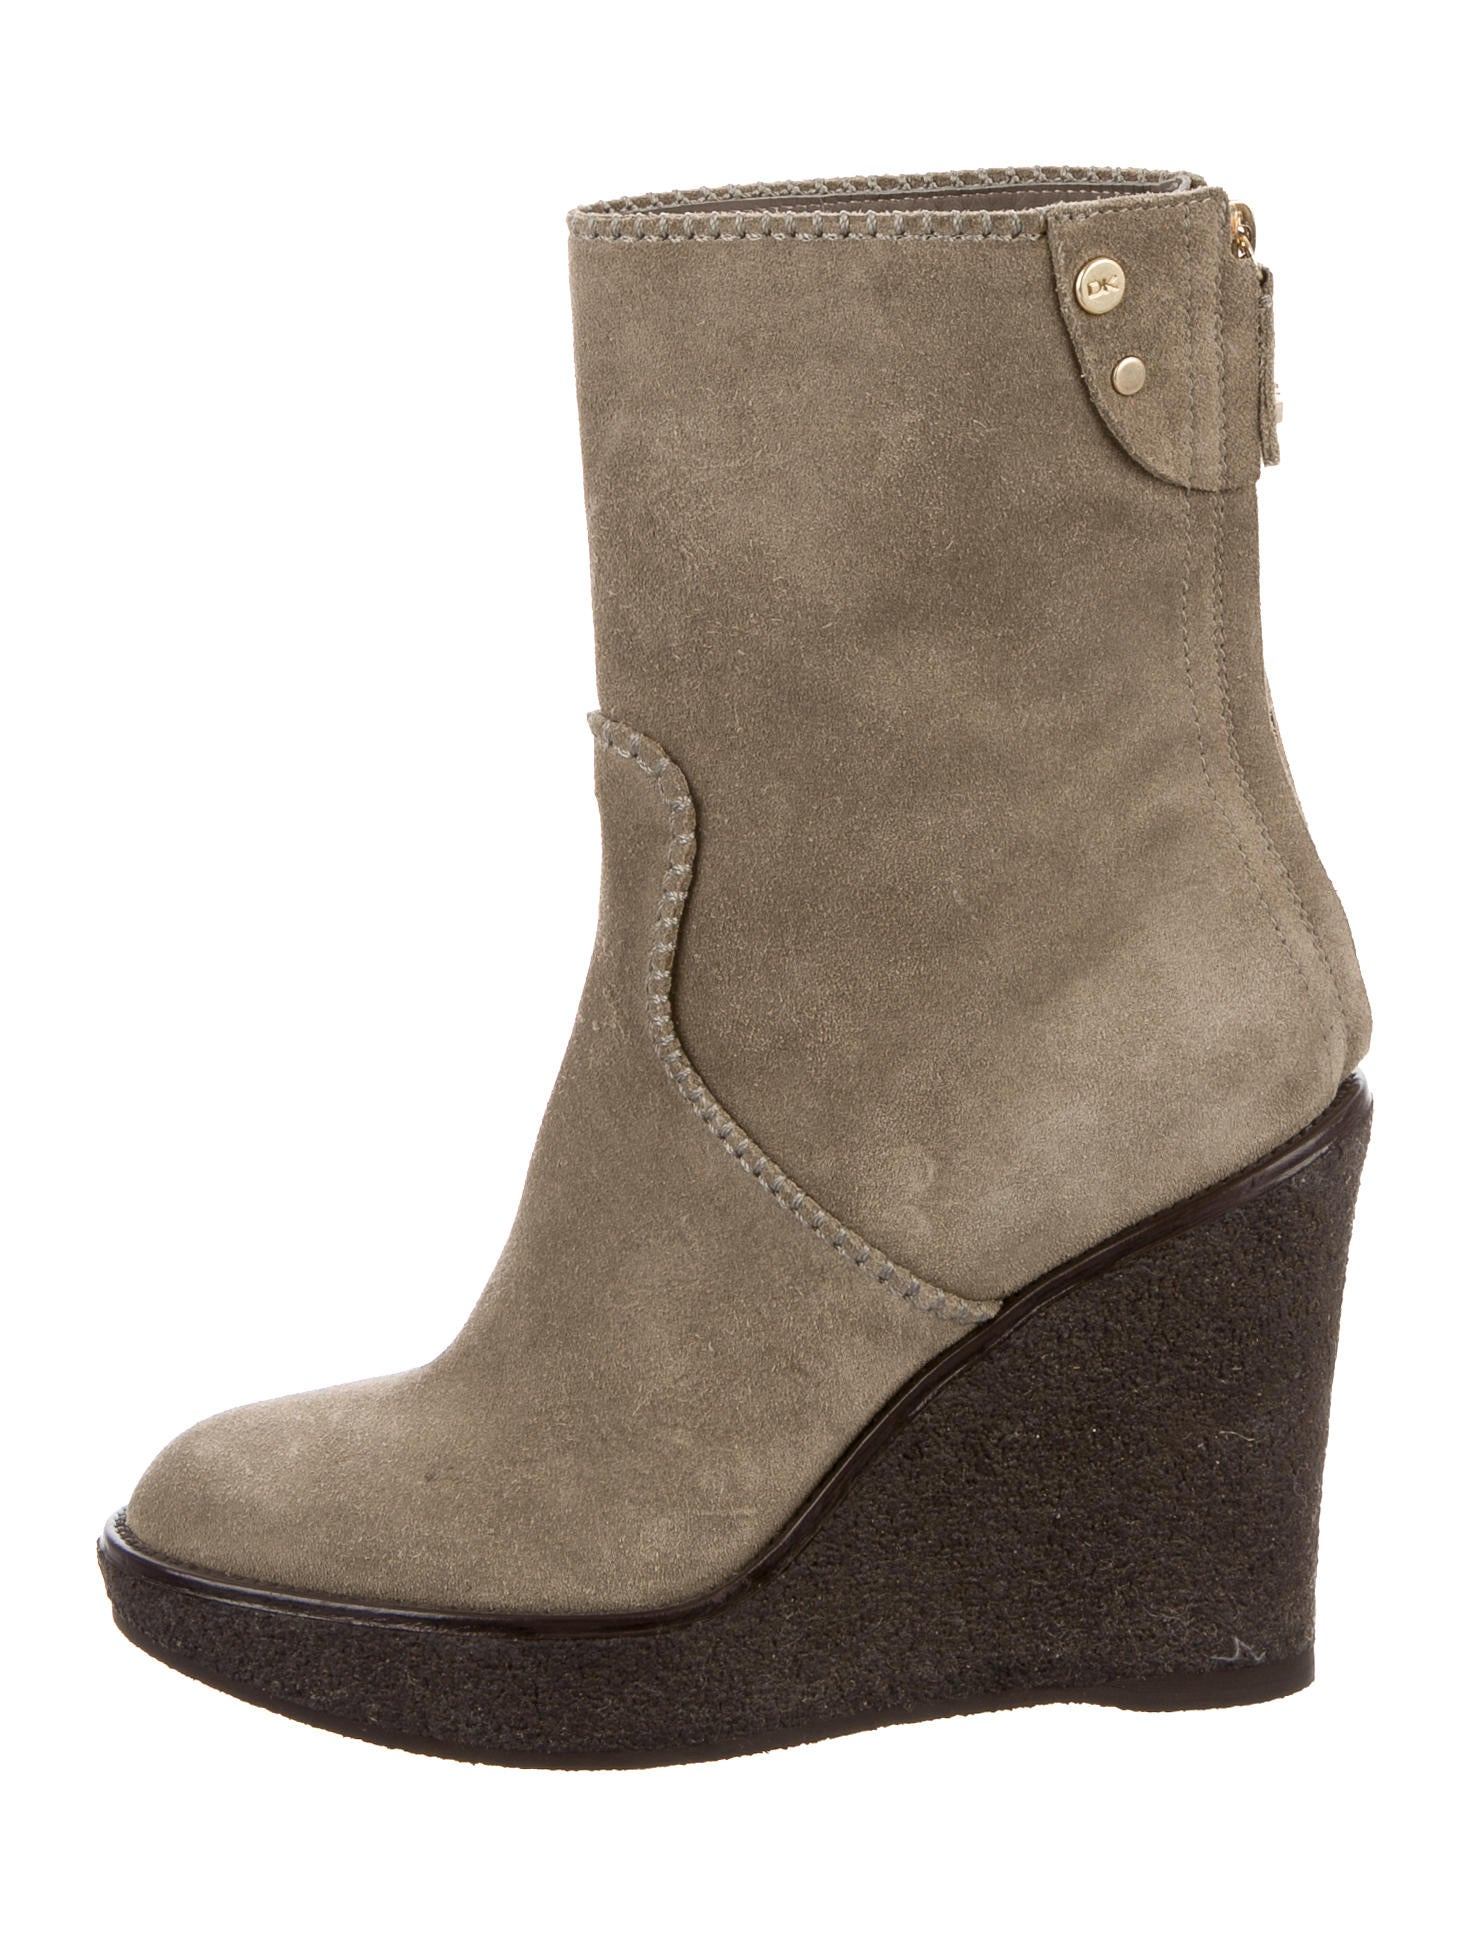 donna karan suede wedge ankle boots shoes don21272